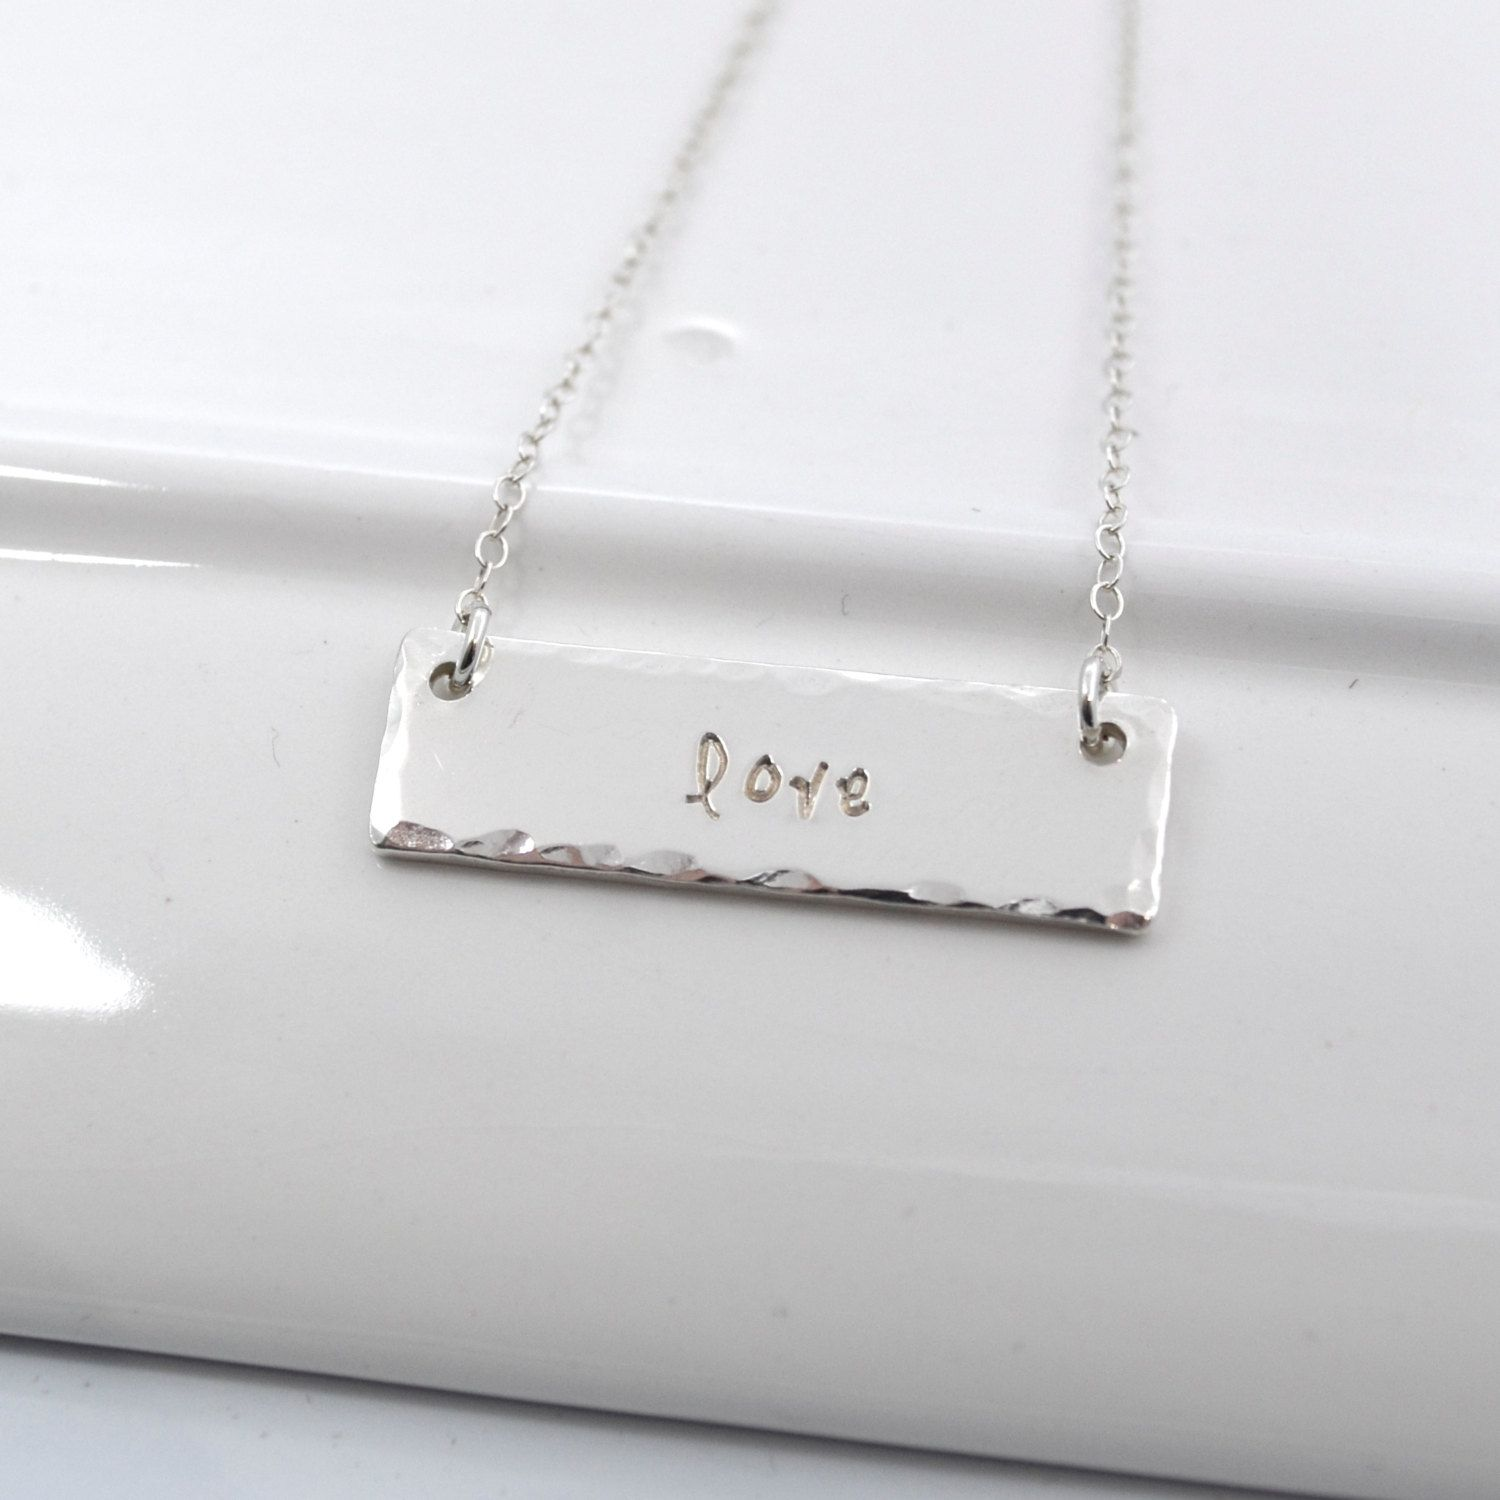 Hand Stamped Bar One Word Necklace in Sterling Silver by DesignMeJewelry on Etsy